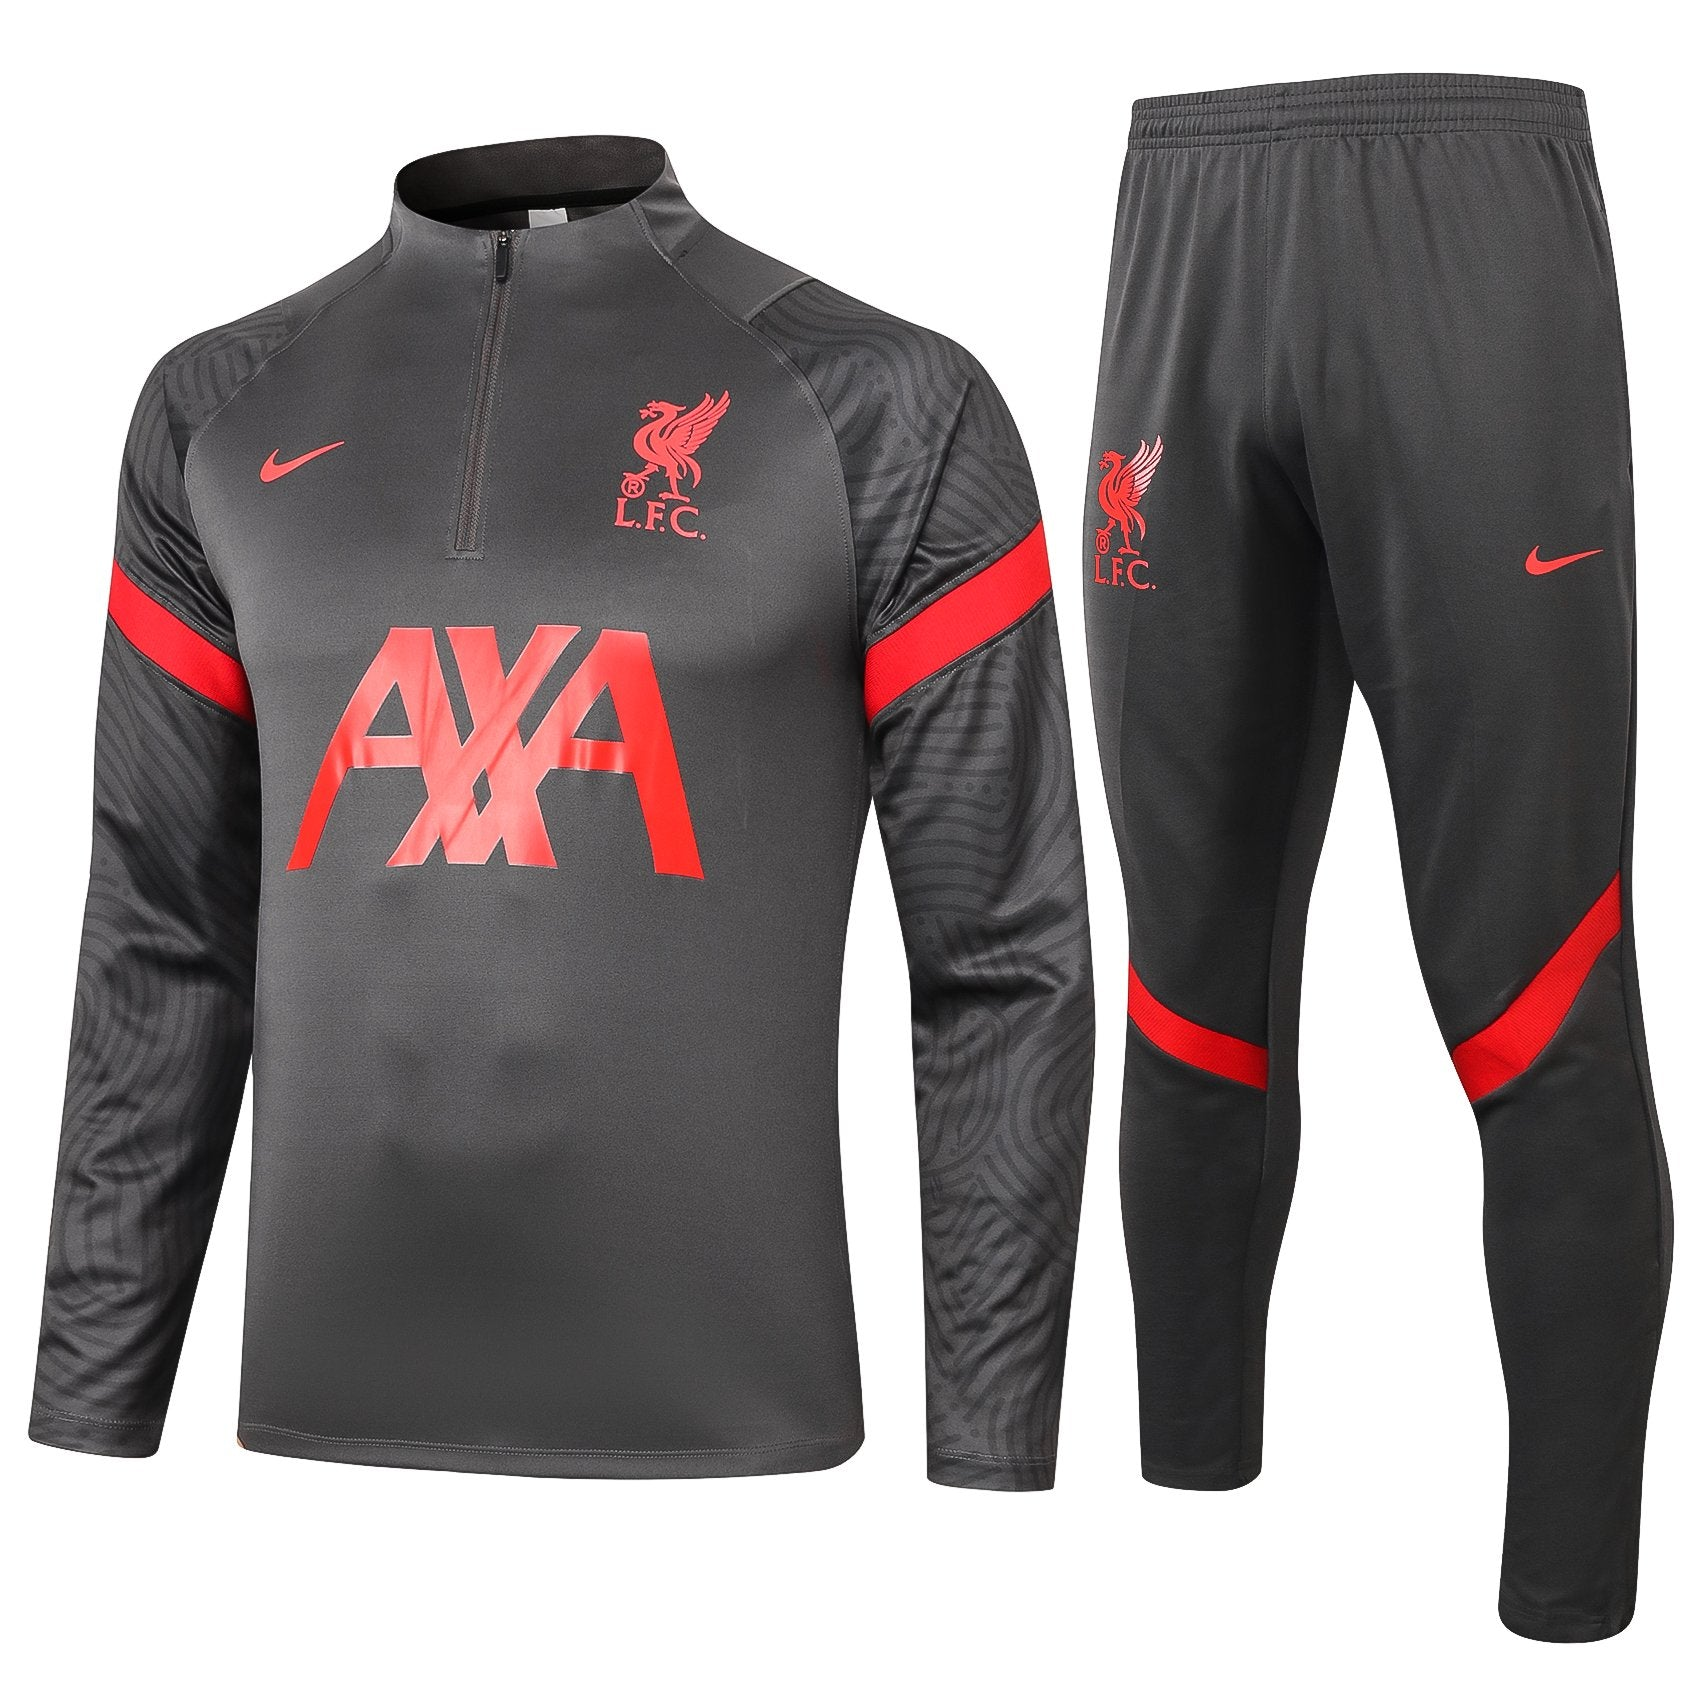 Survetement Liverpool Nike 2021 Junior/Enfant Foot Online freeshipping - Foot Online